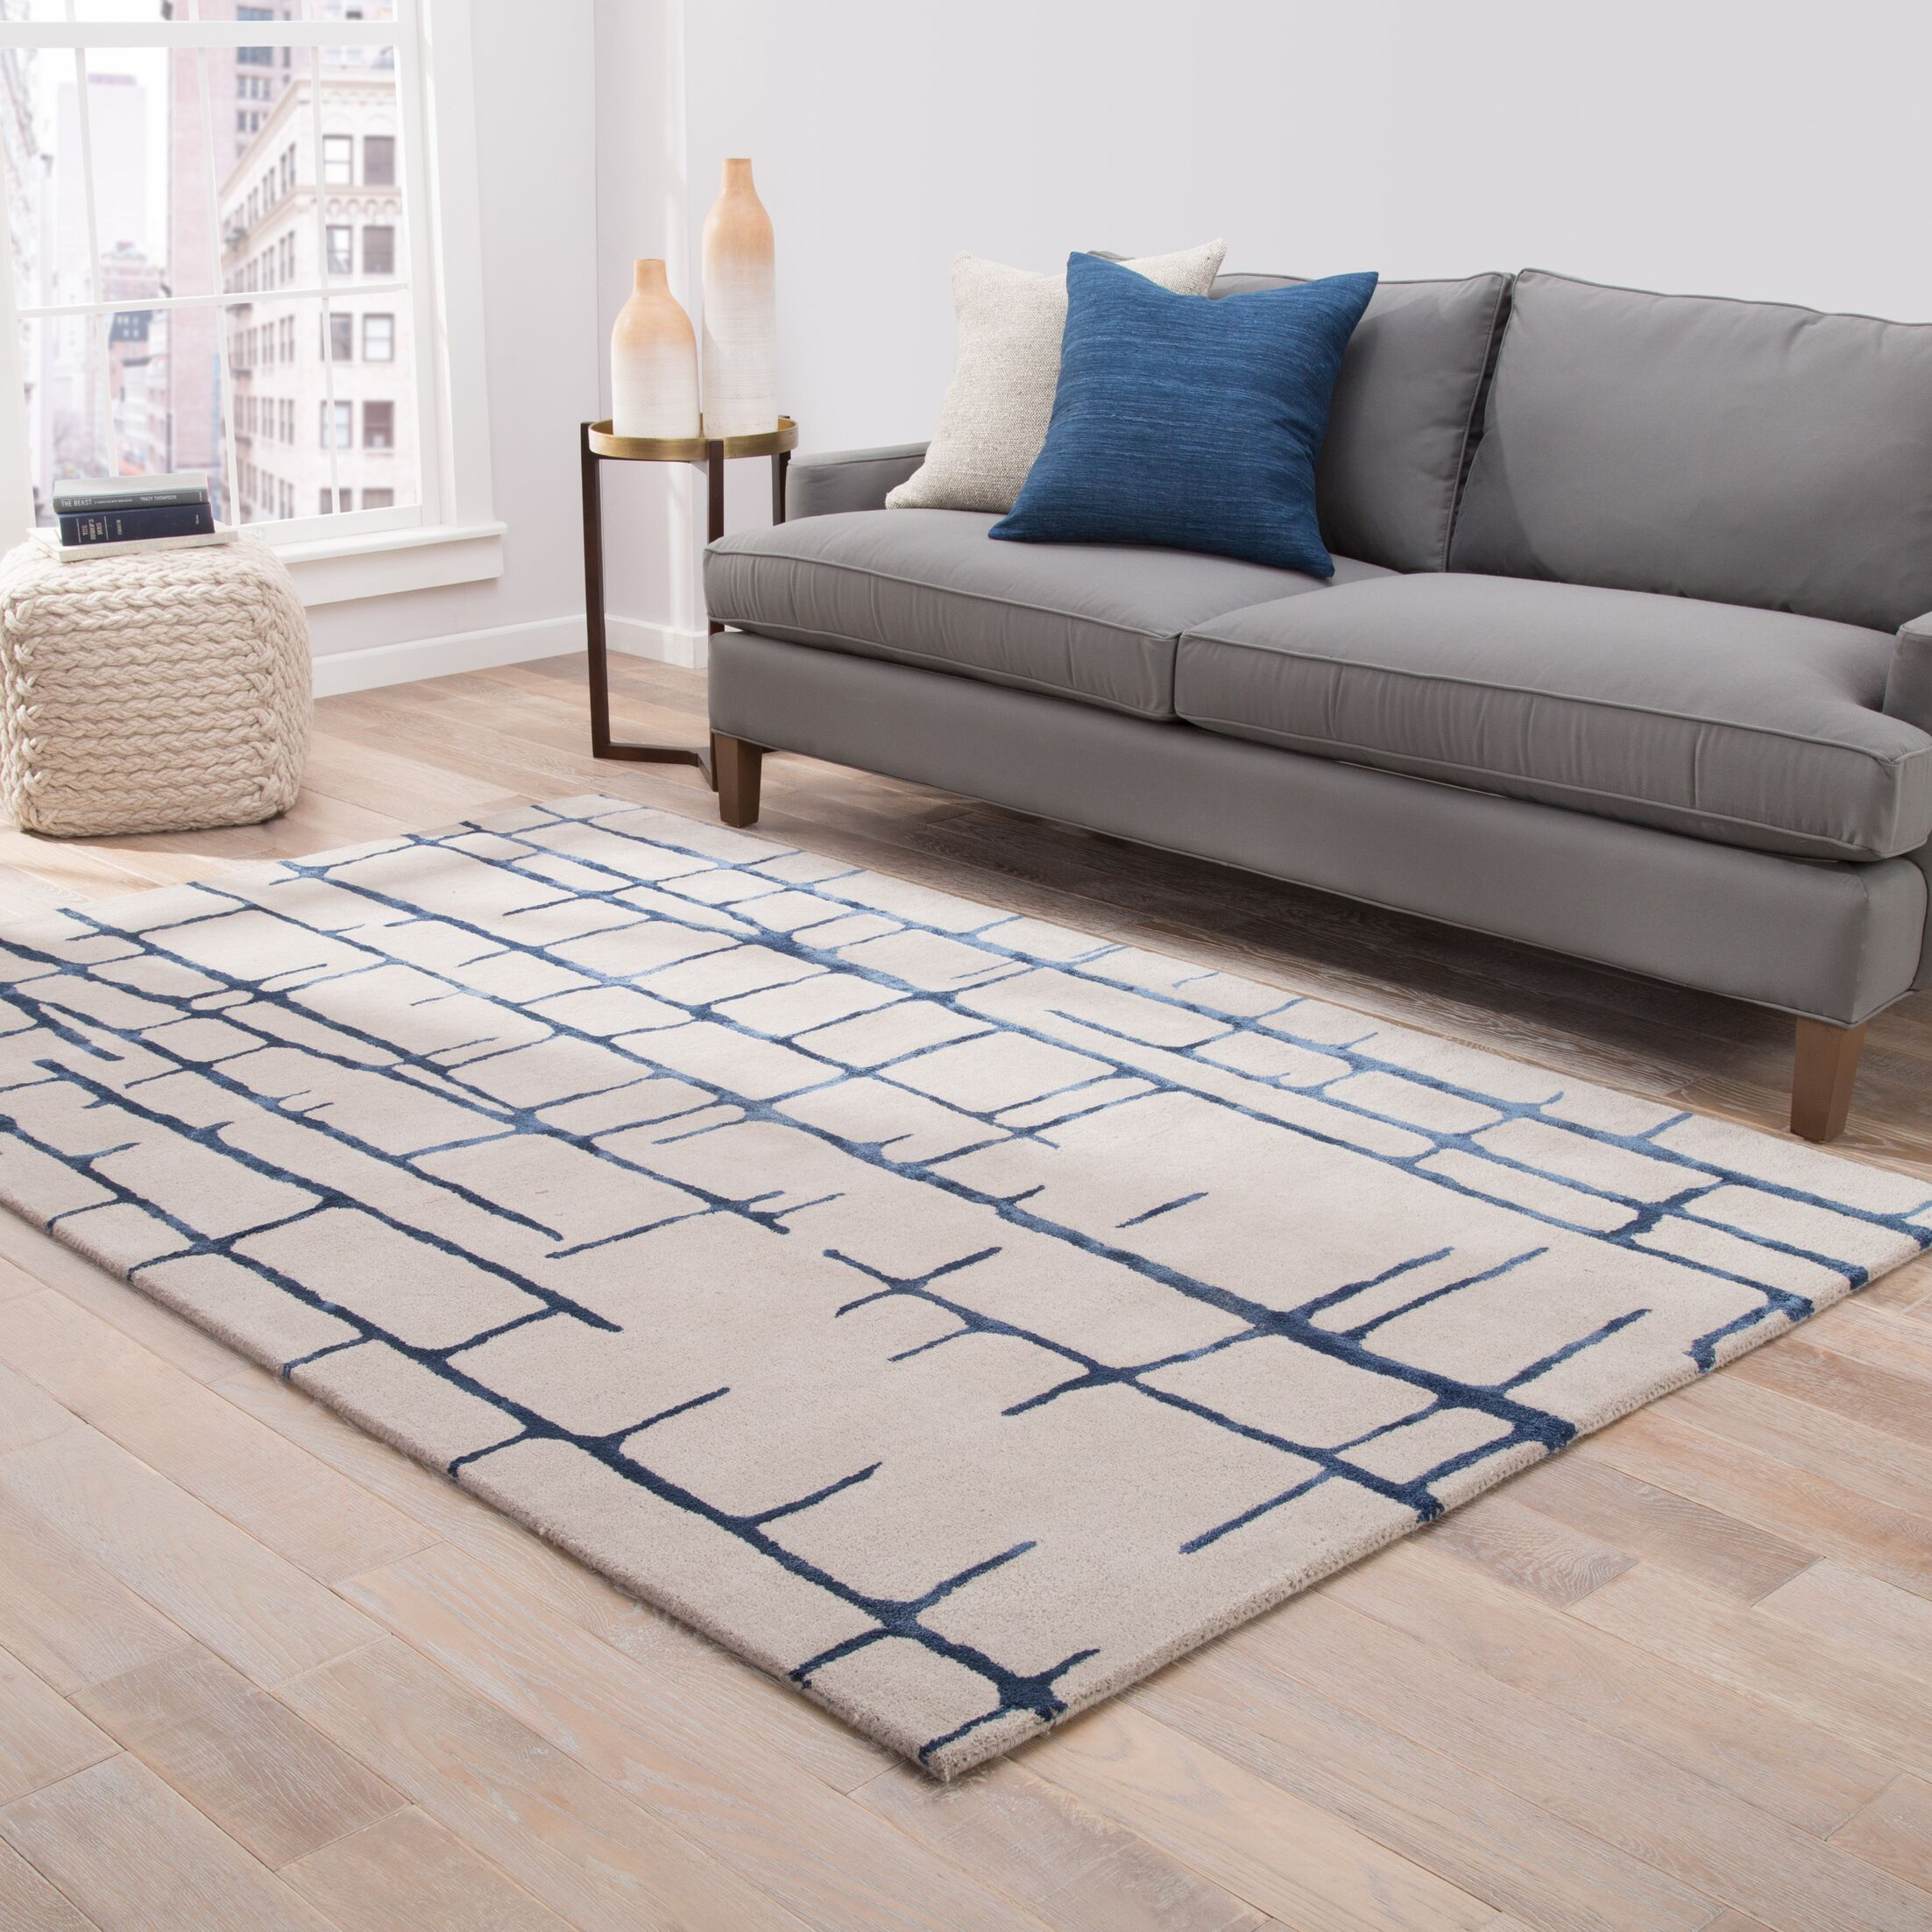 Heinrich Hand-Tufted Taupe/Navy Area Rug Rug Size: Rectangle 8' x 10'